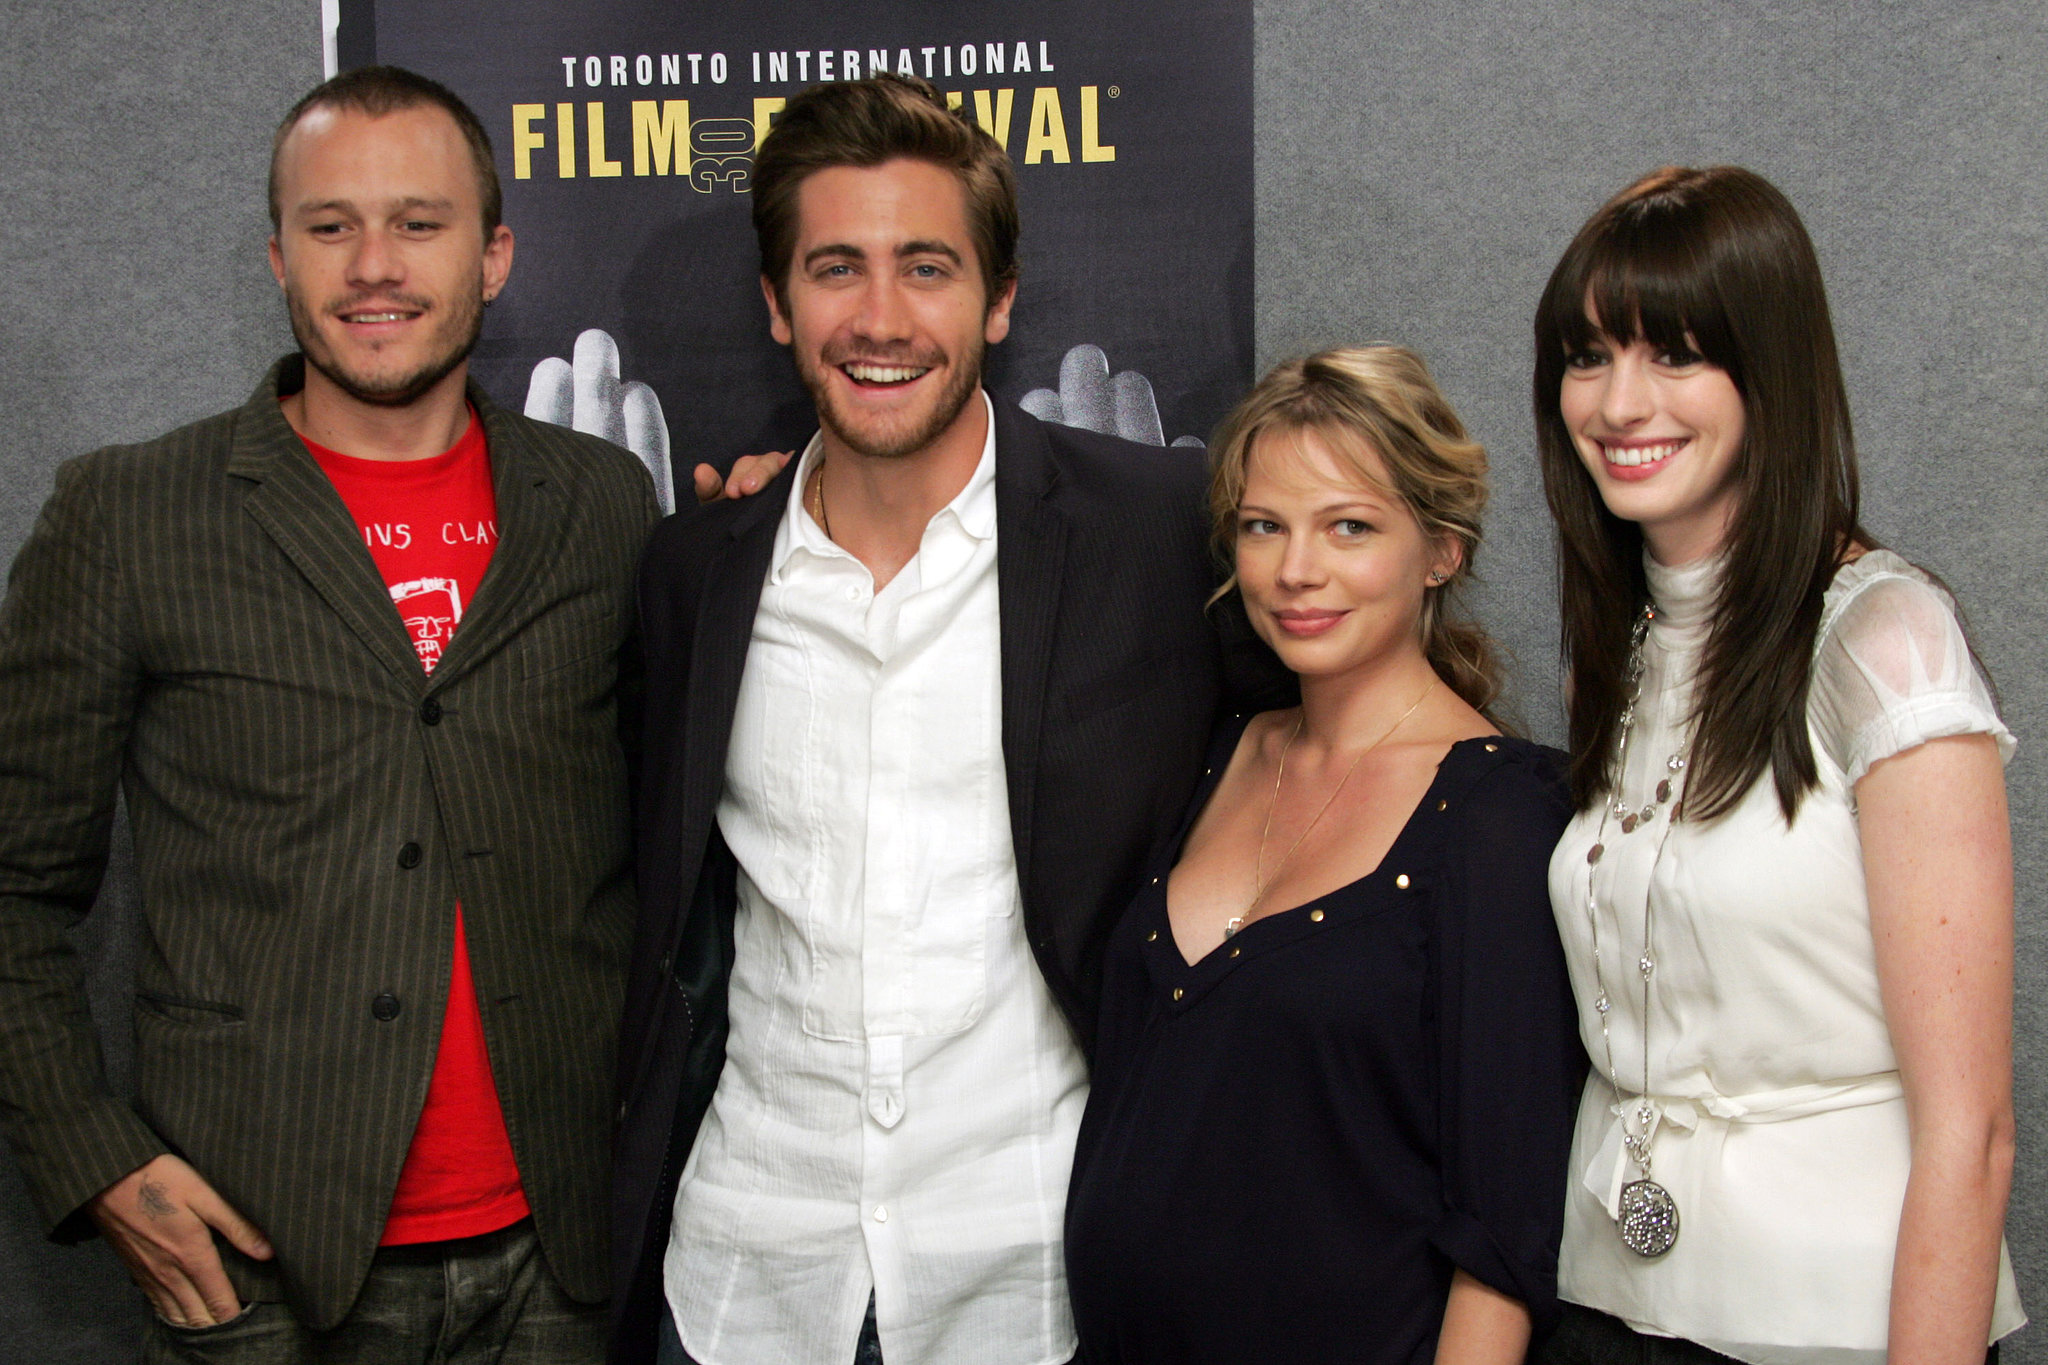 Jake joined his Brokeback Mountain costars — Heath Ledger, Michelle Williams, and Anne Hathaway — for the film's premiere at the 2005 Toronto Film Festival.